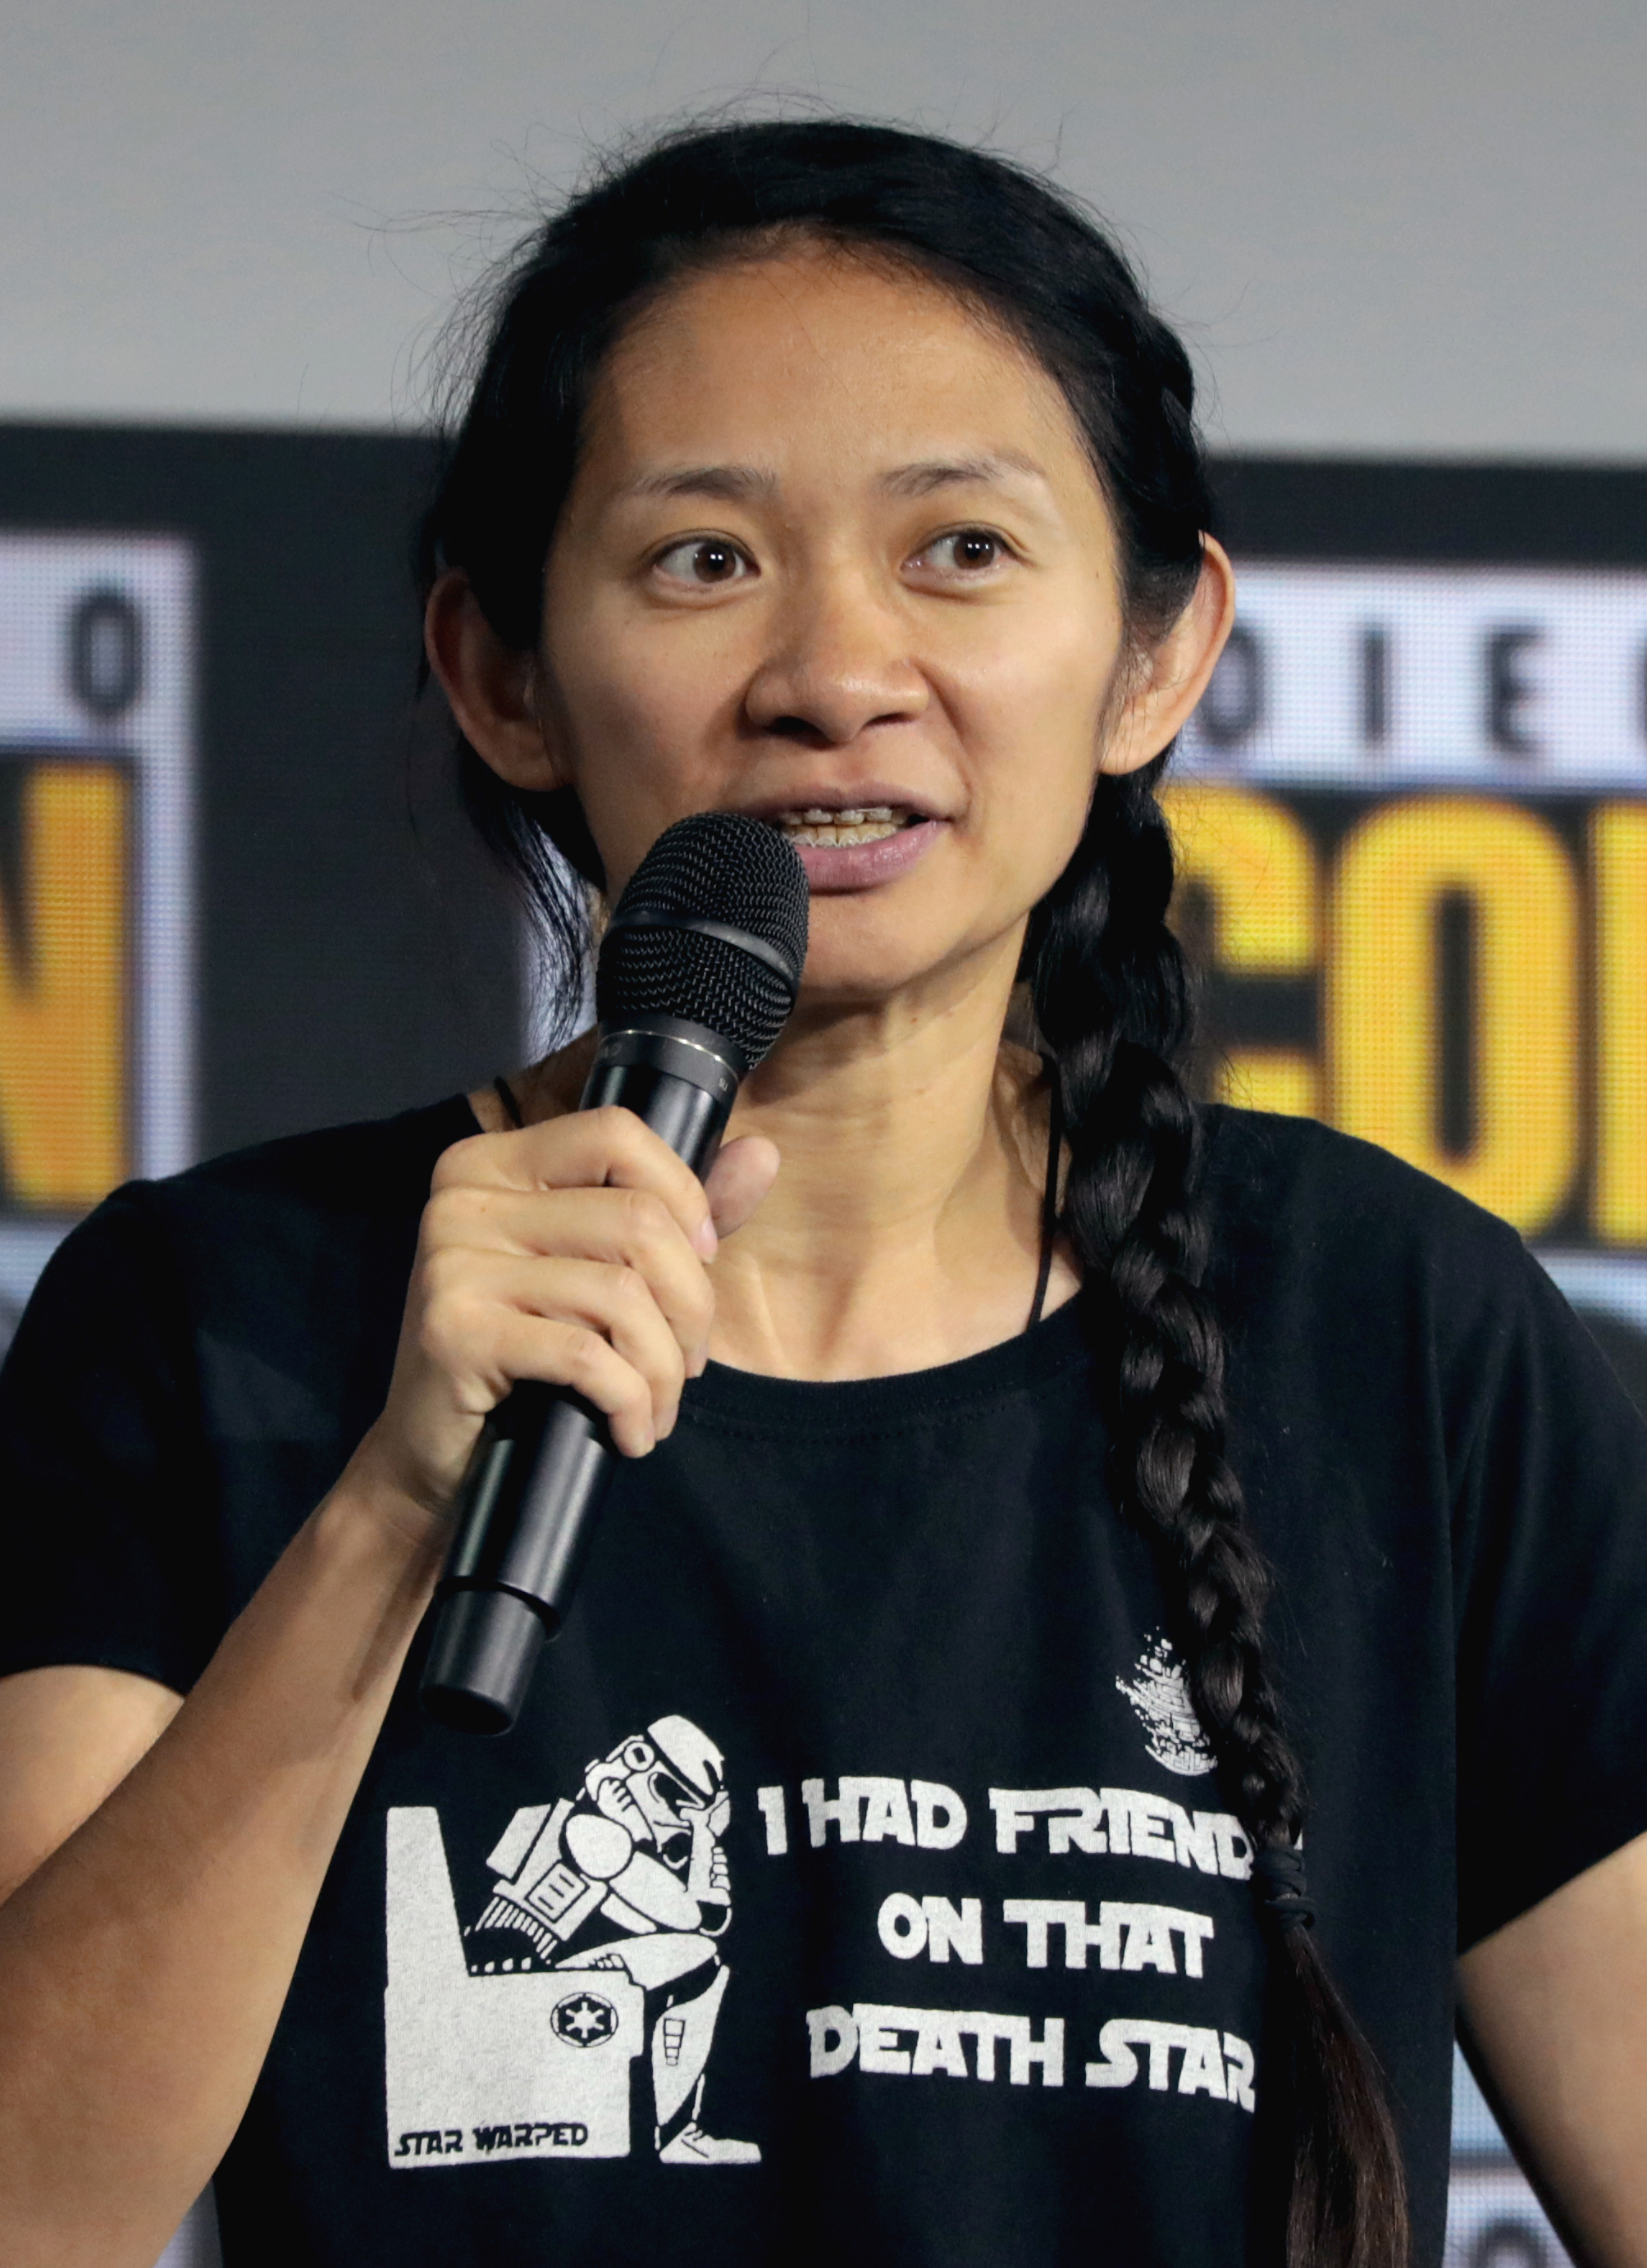 A woman with dark, braided hair wearing a t-shirt speaks into a microphone at an event